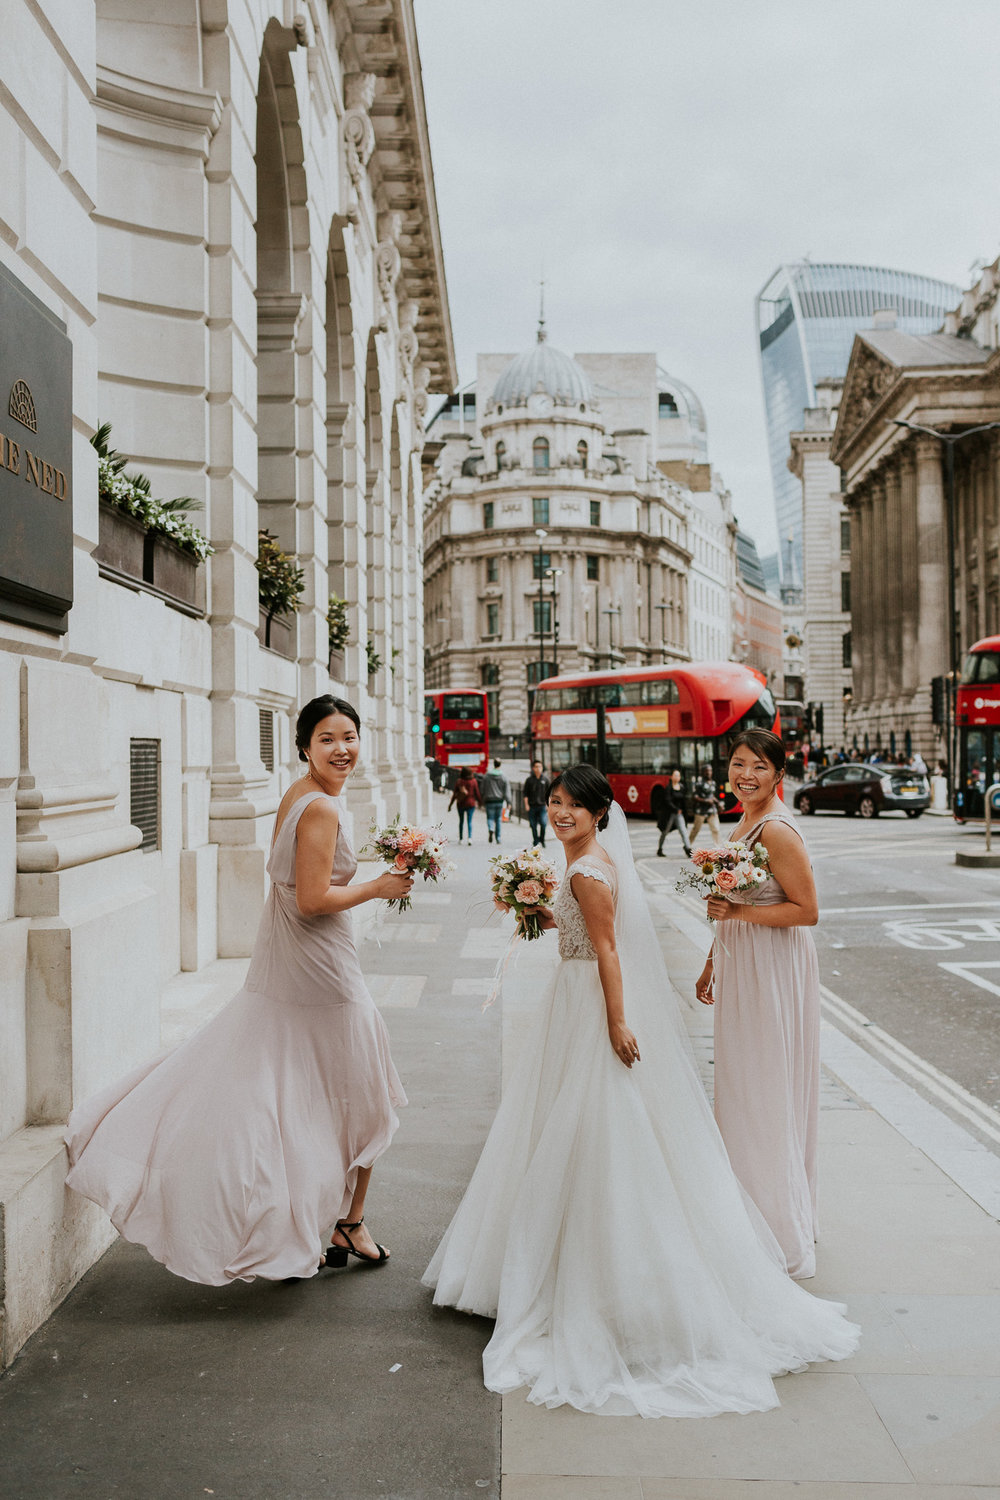 Kat leaving  The Ned  with her bridesmaids. Photographed by  Maja Tsolo